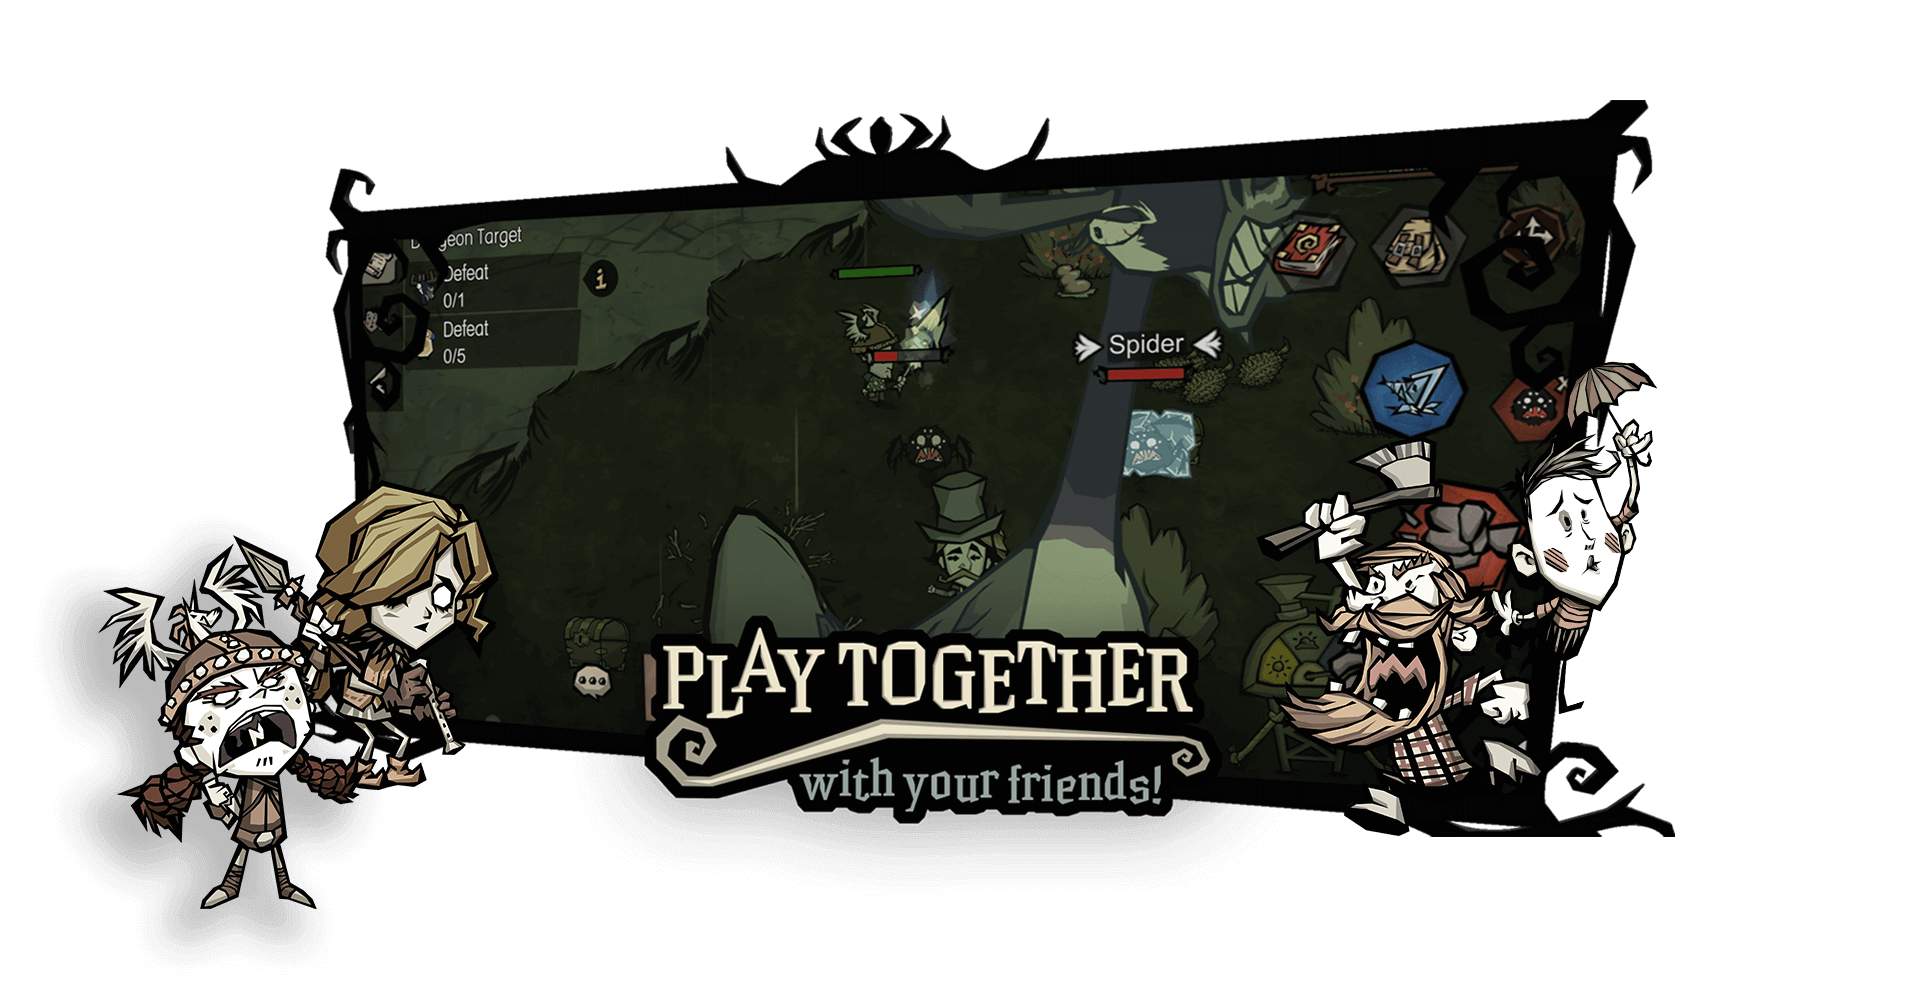 Don't starve play together